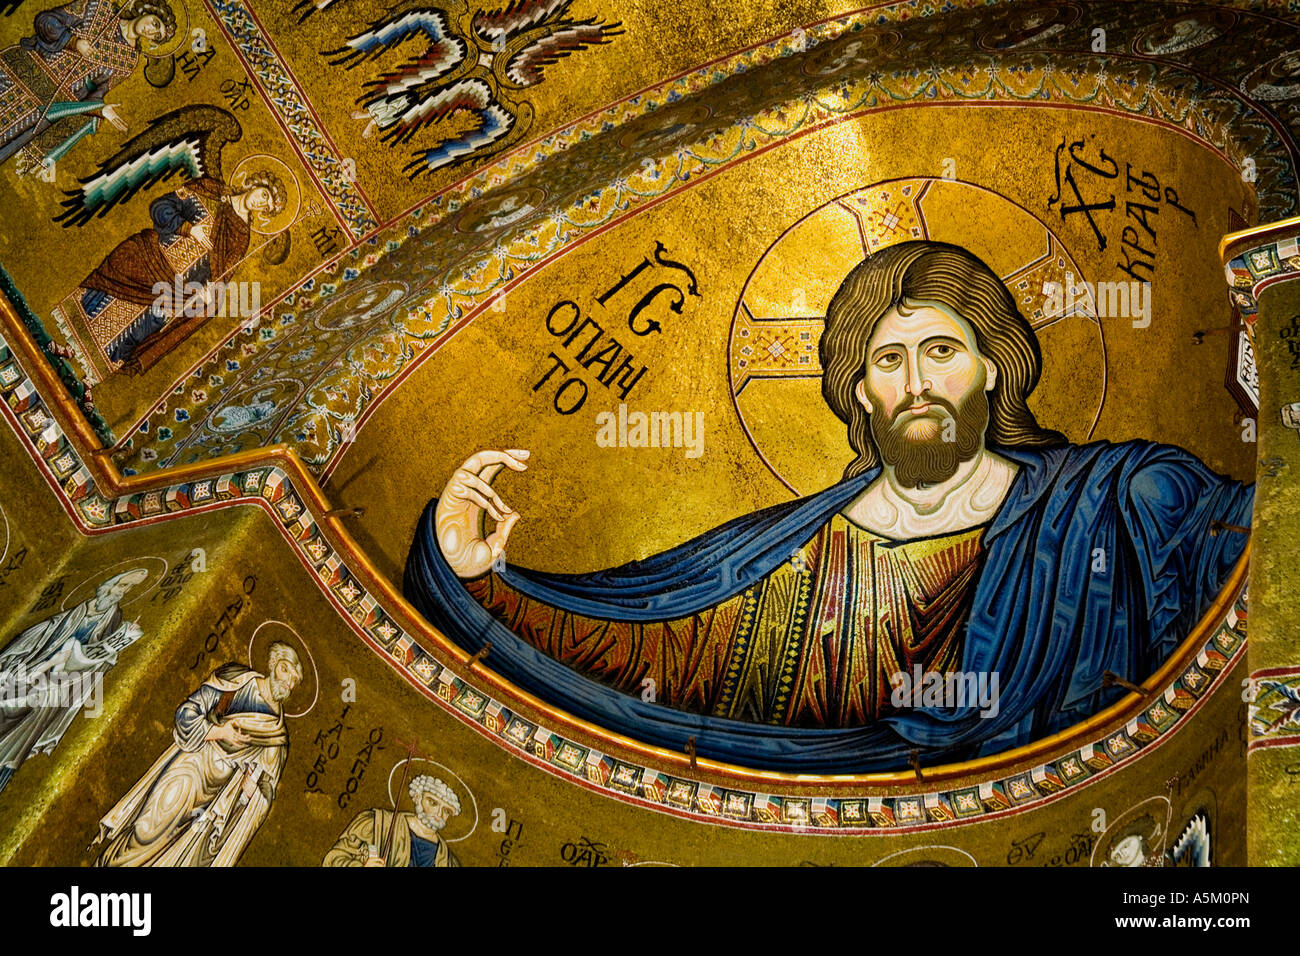 Jesus Christ Mosaic in Monreale Cathedral near Palermo Sicily Italy Europe - Stock Image